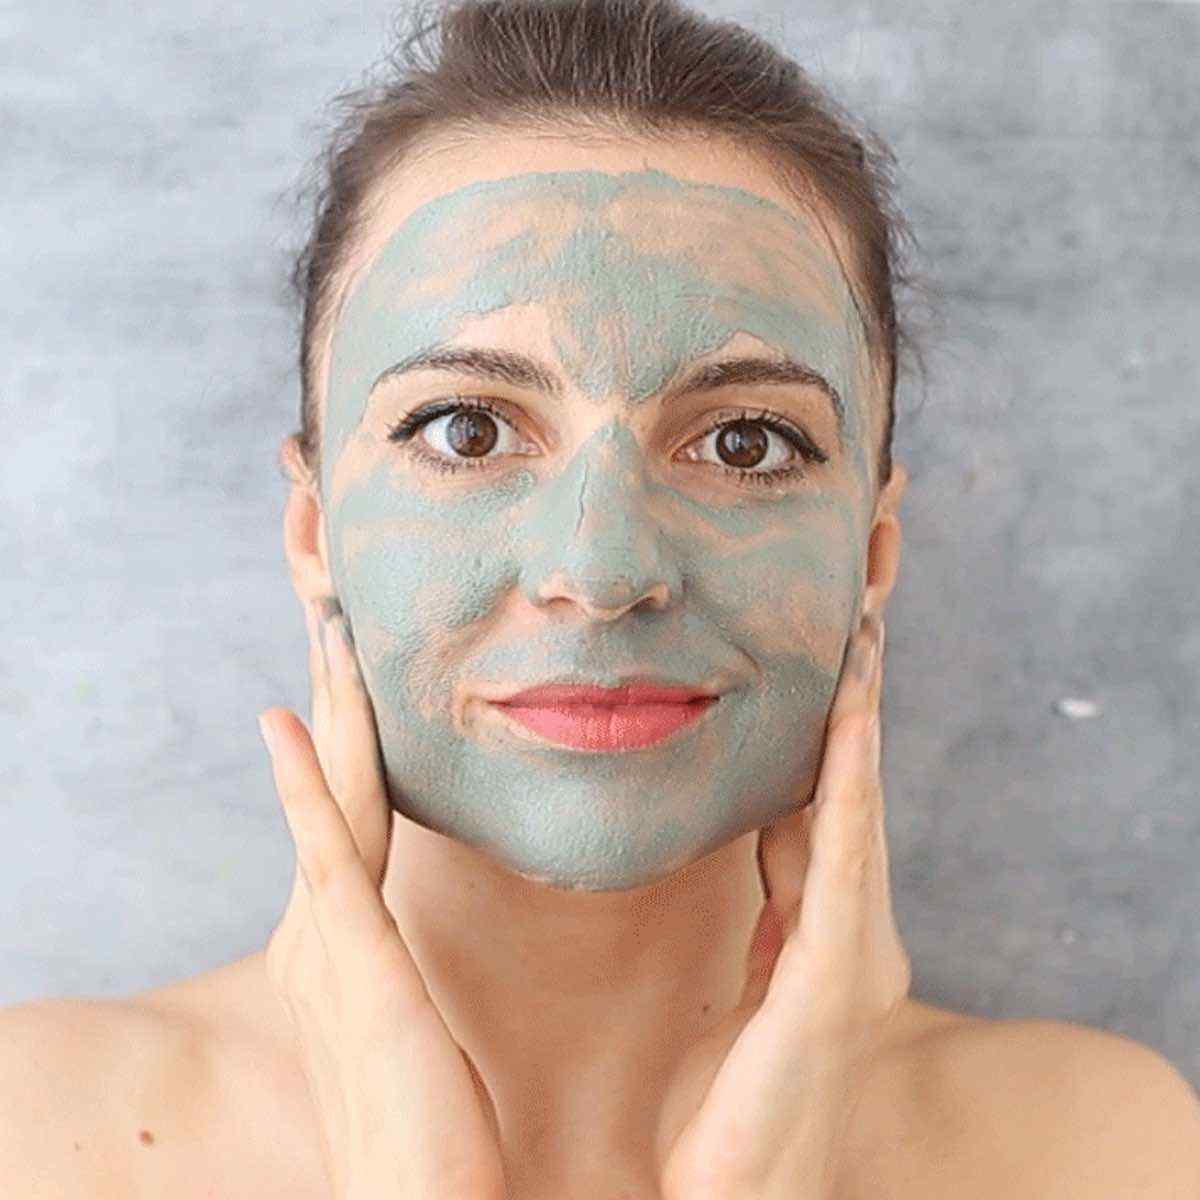 Bentonite Clay DIY Face Mask